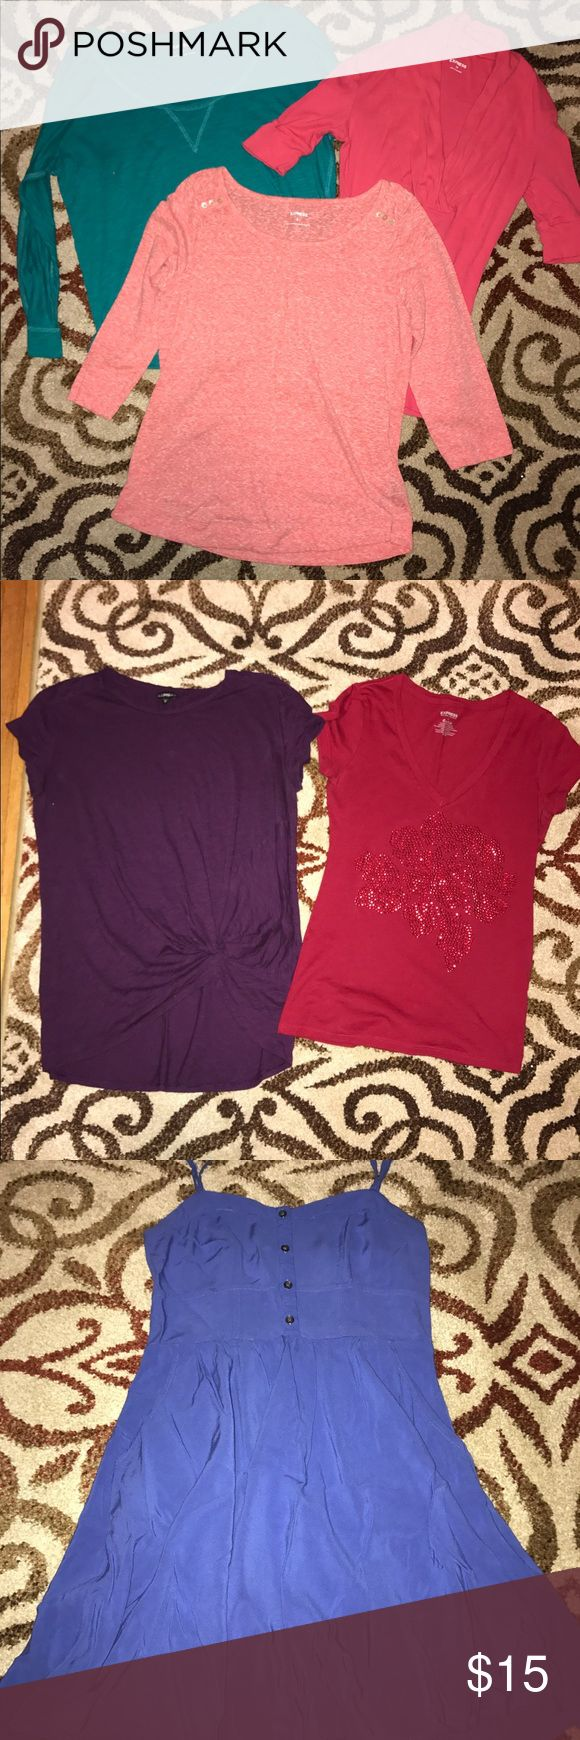 EXPRESS lot 6pc. Express lot!  Green long sleeve size s Light Pink 3/4 sleeve size s Dark pink 3/4 sleeve size xs Purple short sleeve size m( fits like baggy small) Red short sleeve size s Blue dress size xs (stretchy back) Express Tops